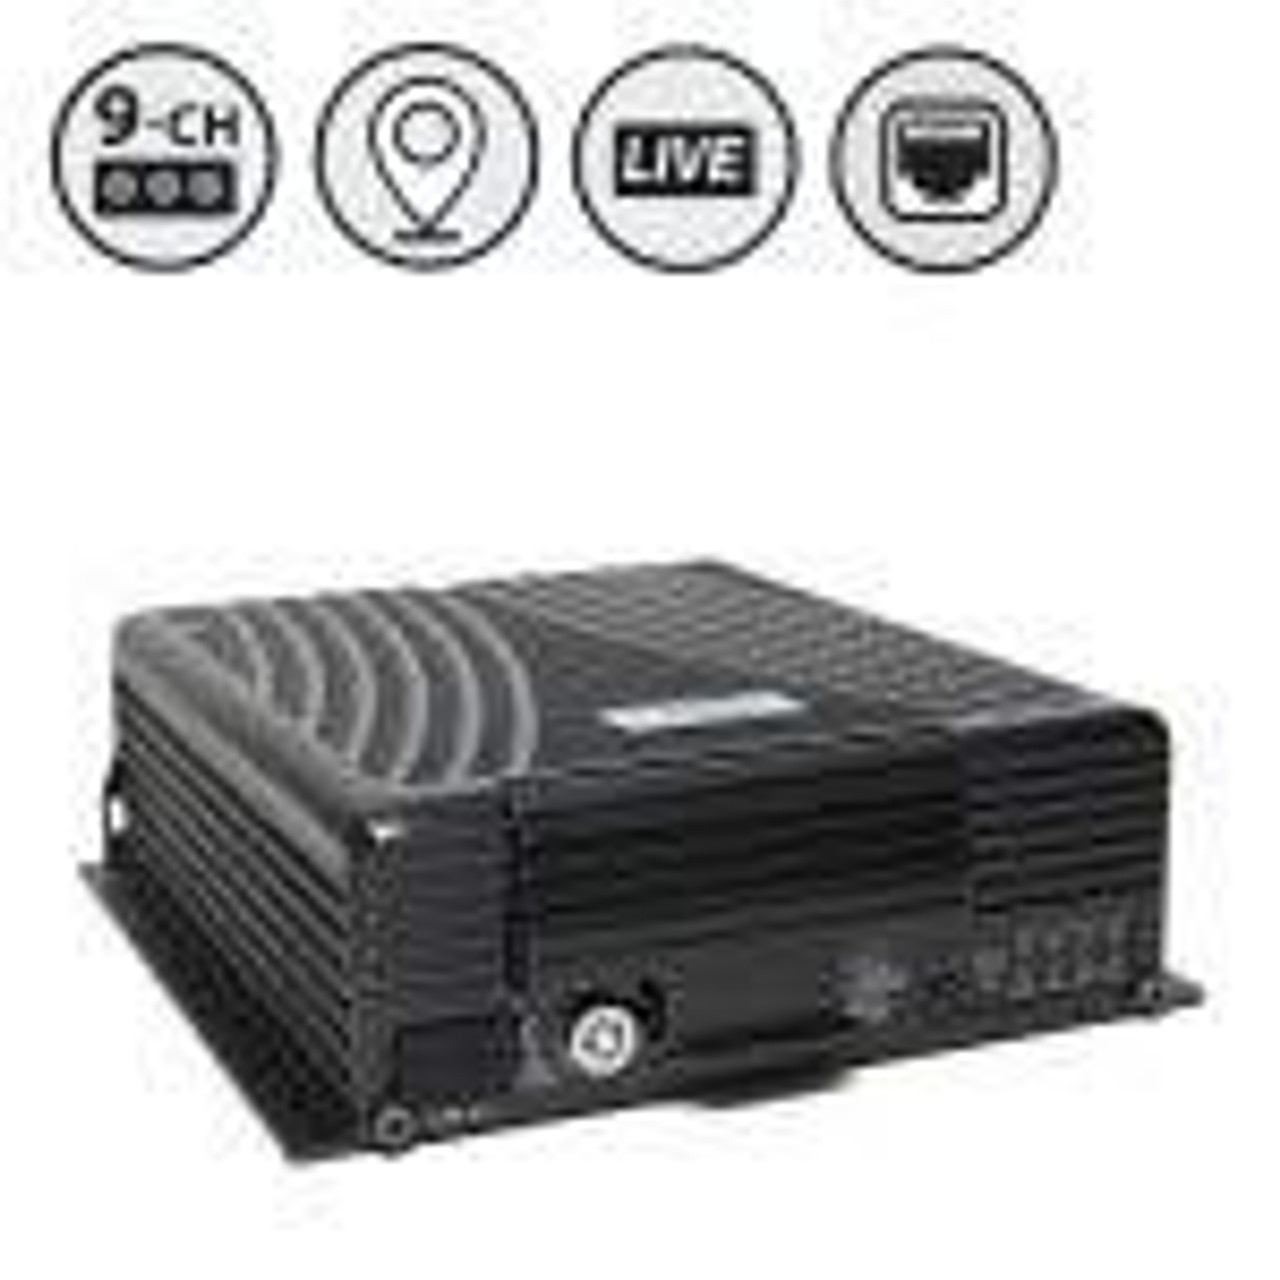 MobileMule™ 8170 | 9 Channel Mobile DVR with GPS and Live Video Remote Viewing (WiFi + 4G), Western Digital Hard Drive